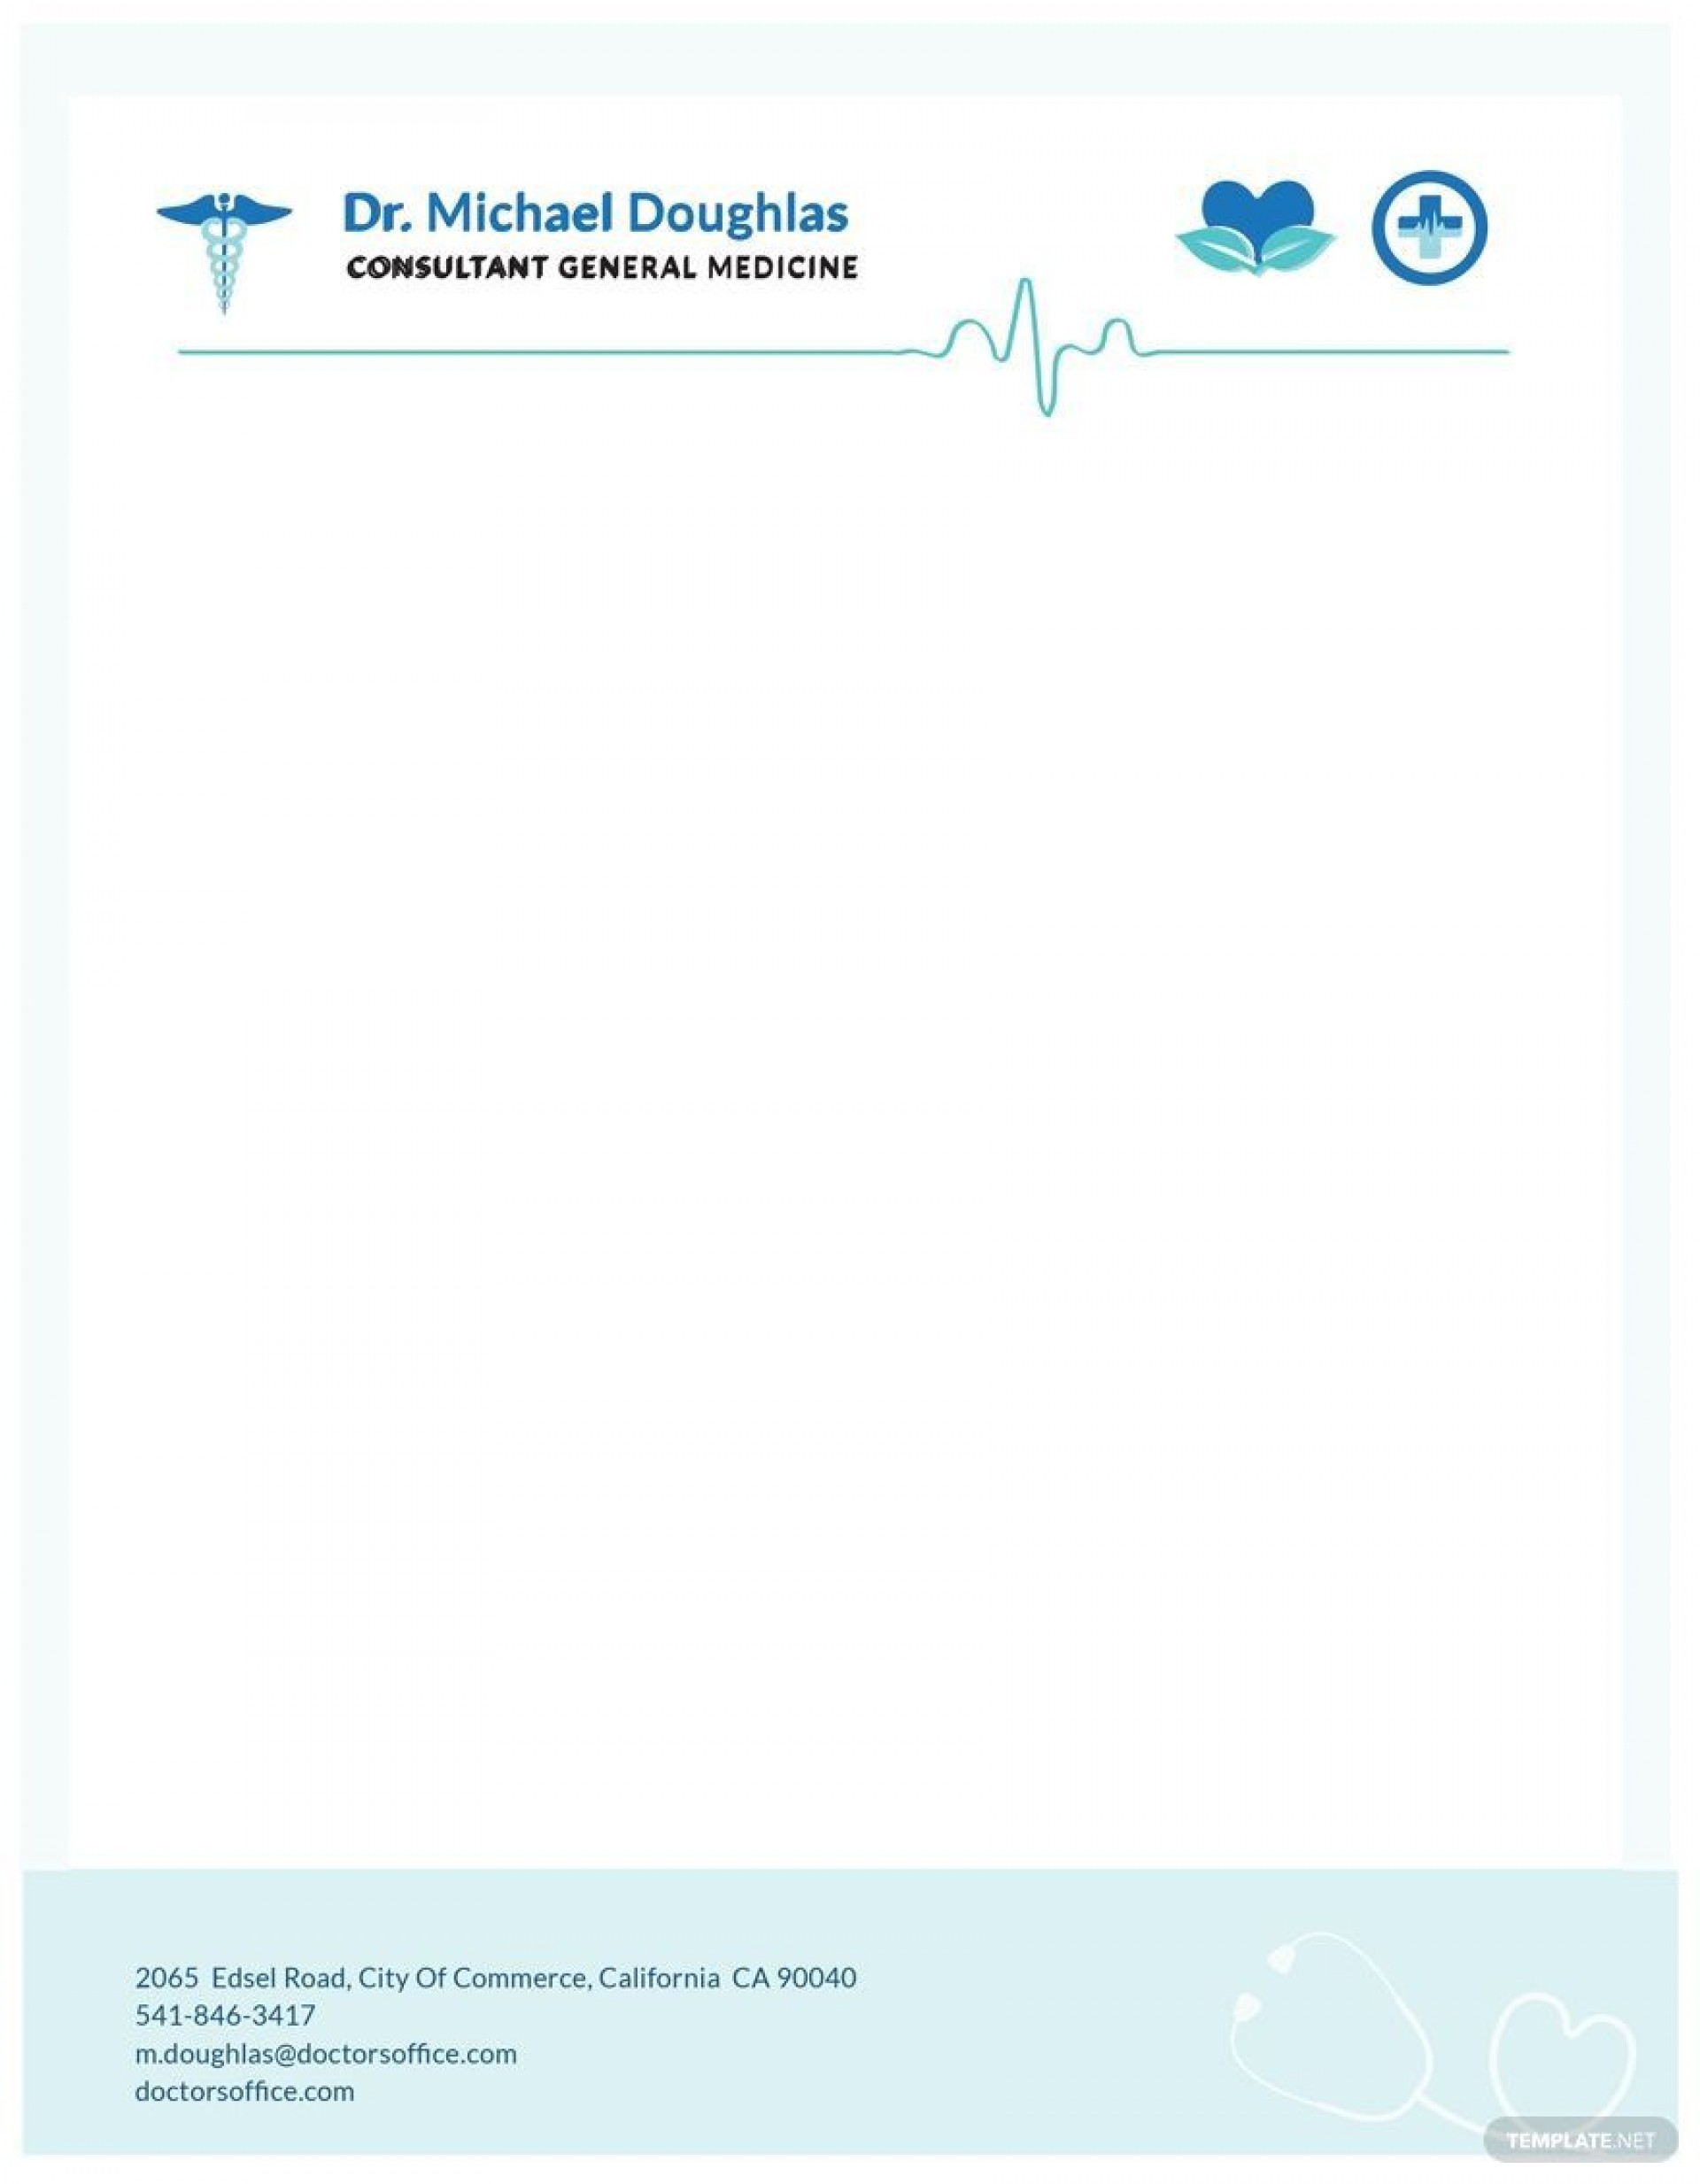 004 Unbelievable Doctor Letterhead Format In Word Free Download Concept  Design1920